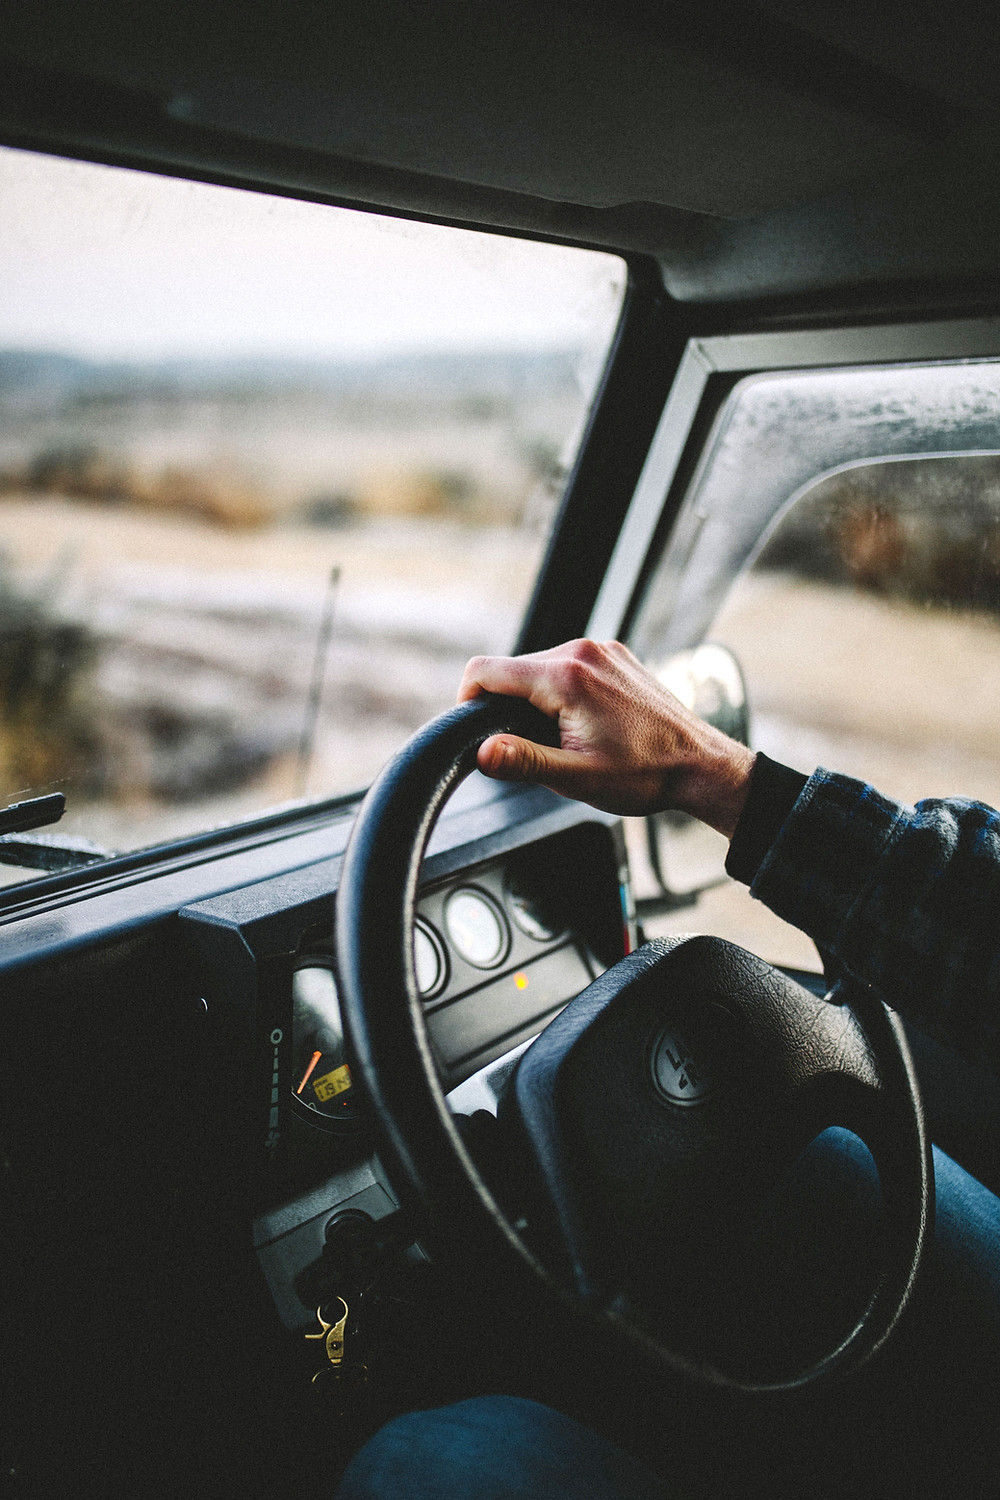 Test drive on New Zealand roads when buying a used vehicle